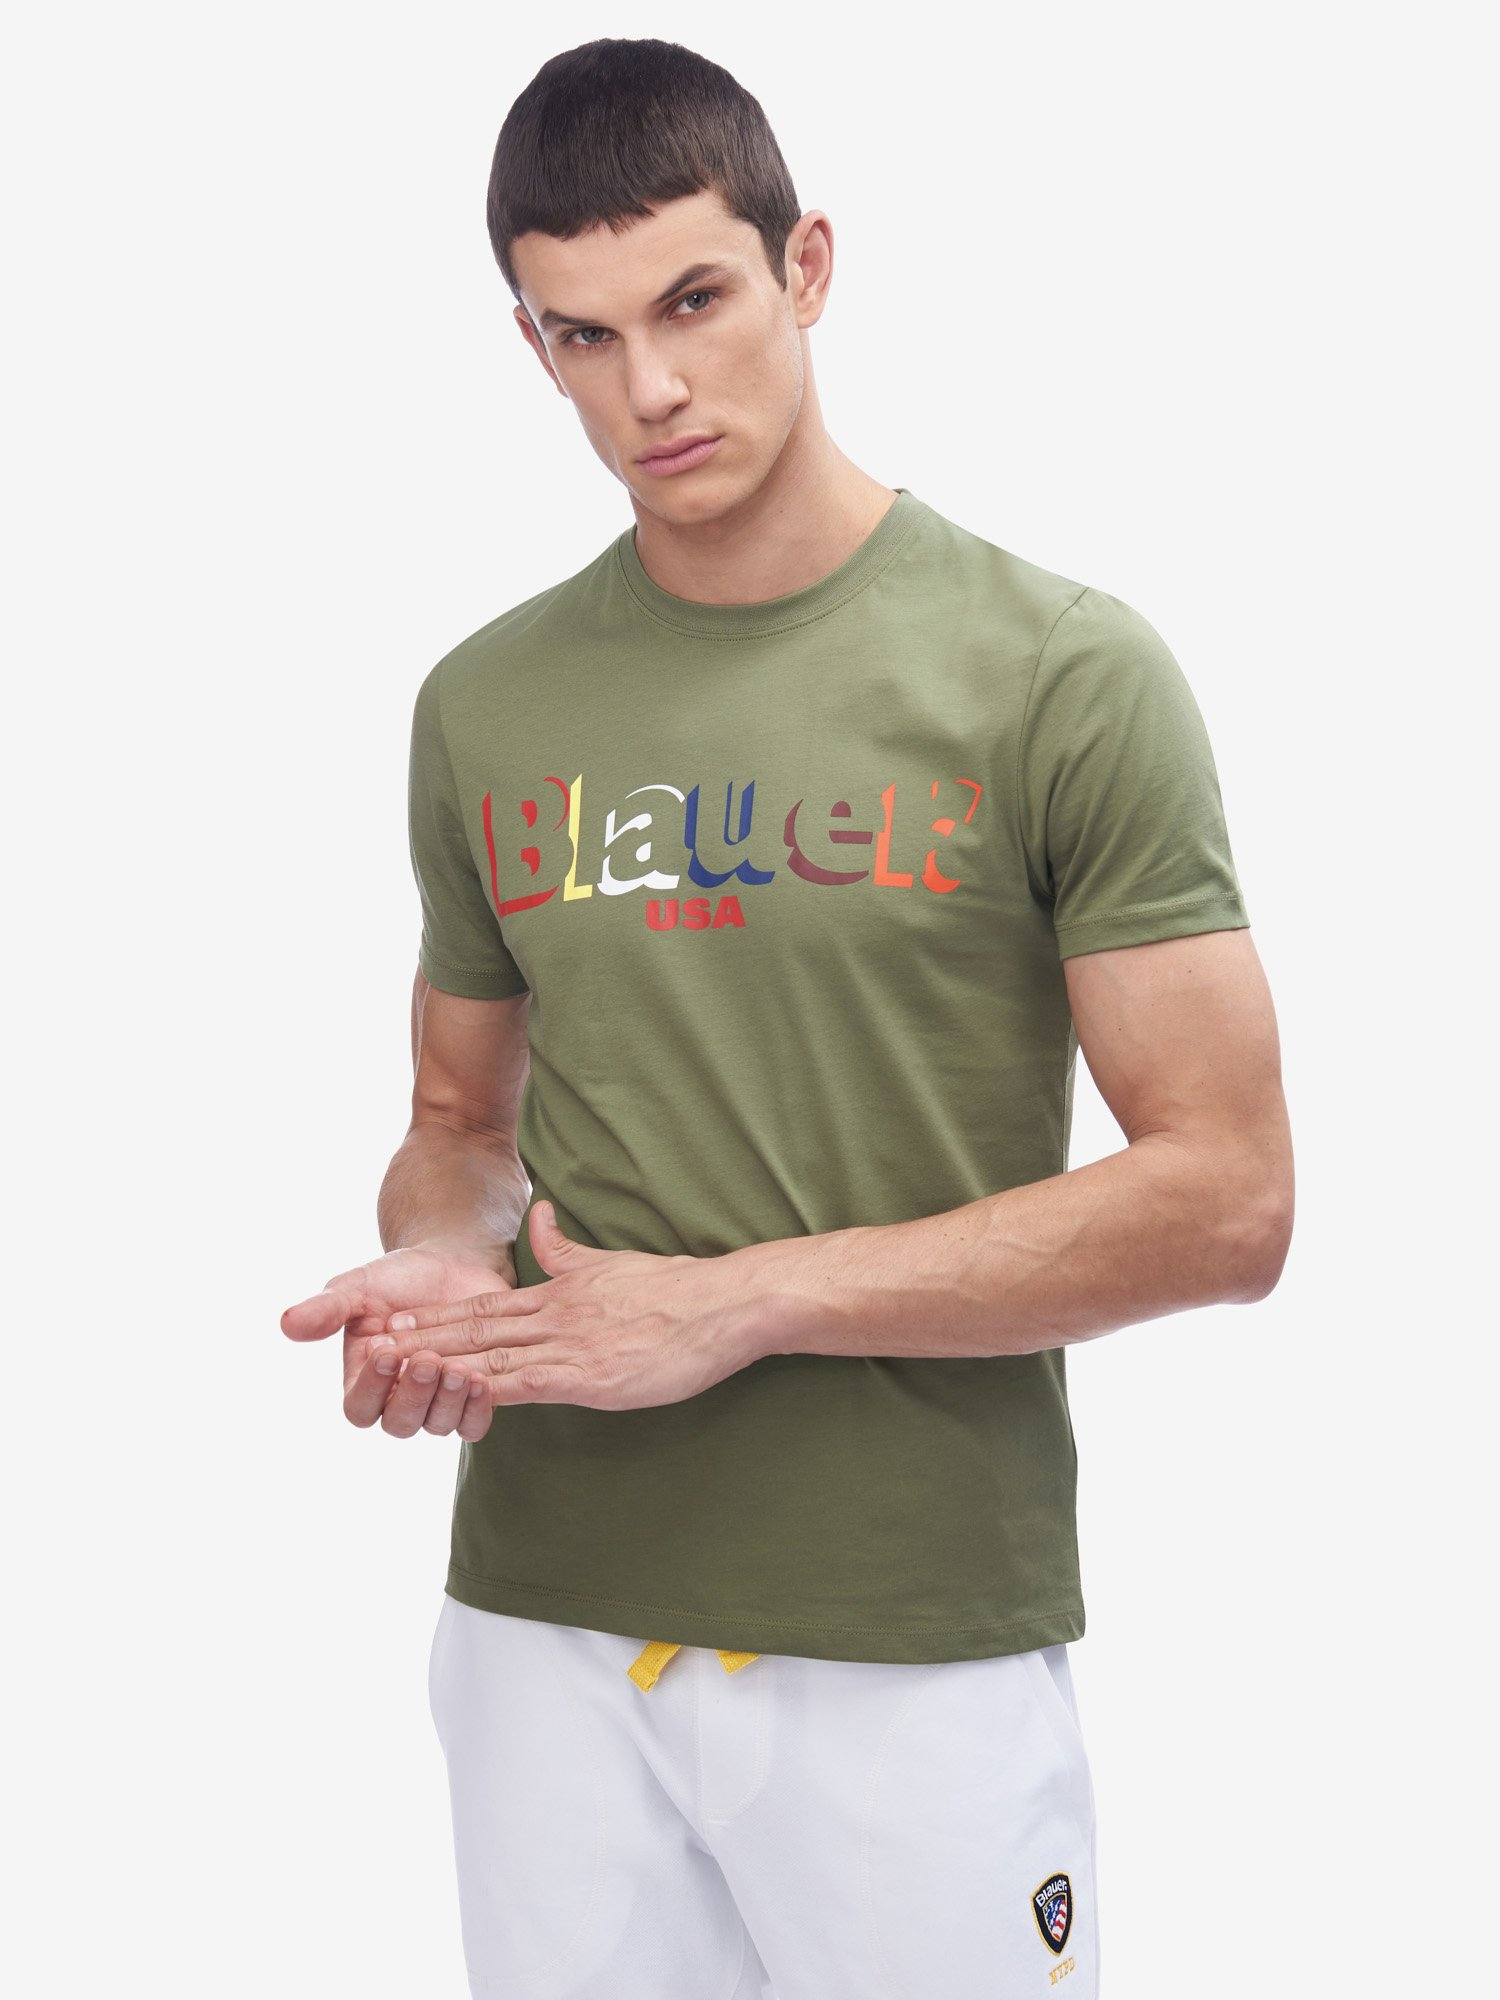 Blauer - COLOURFUL BLAUER T-SHIRT - Olive Green - Blauer